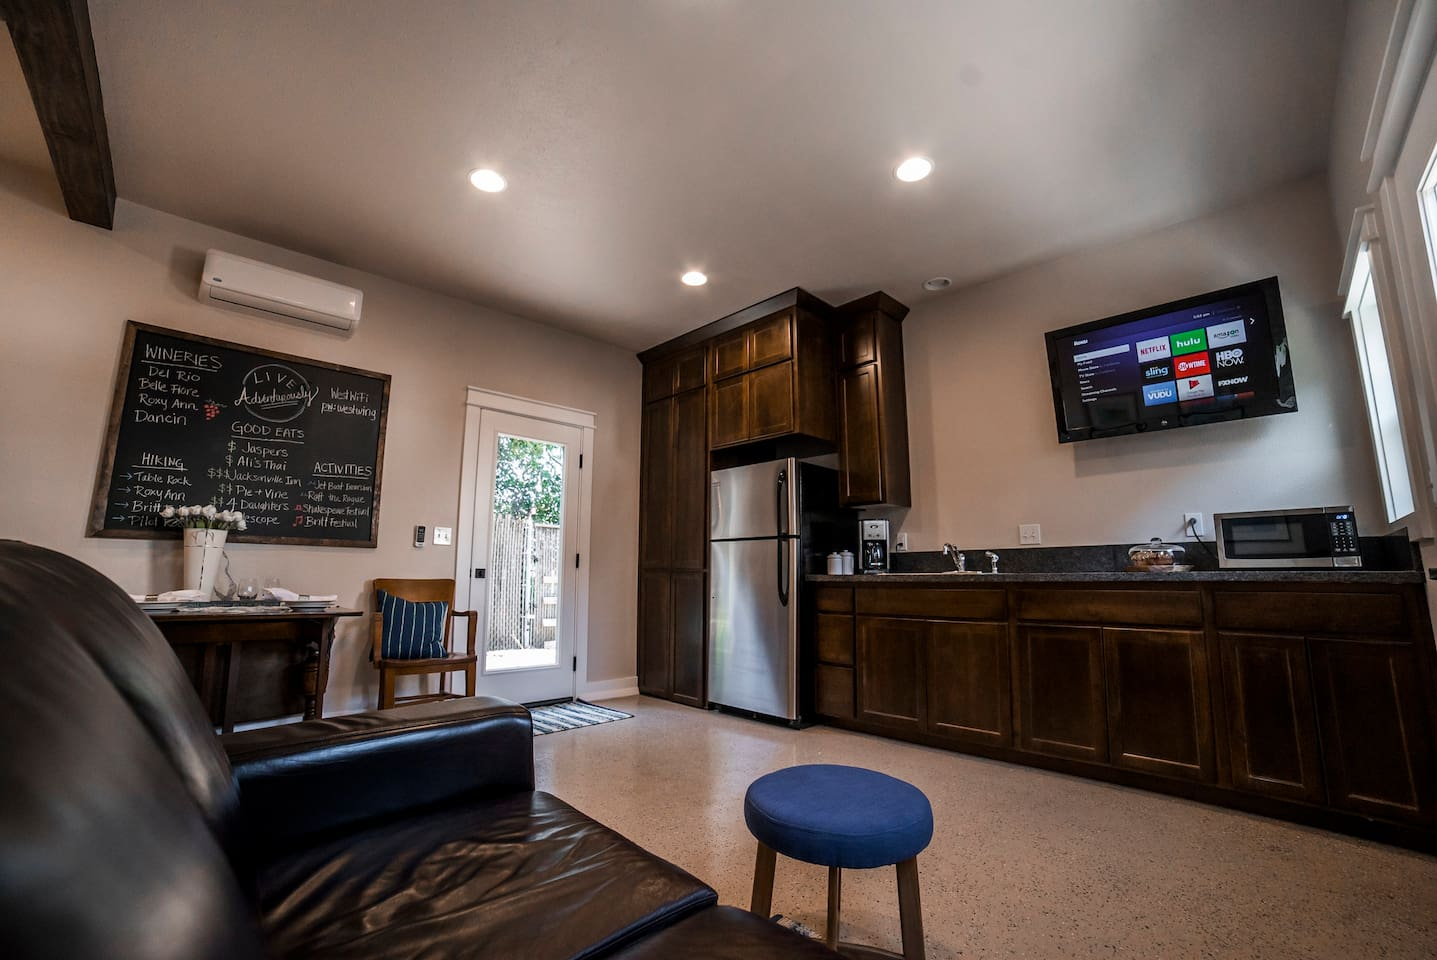 Wall mounted TV with a Roku streaming stick equipped with Netflix and much more! The fridge will be stocked with a rotation of our favorite snacks and drinks as well as muffins or similar pastries for breakfast.